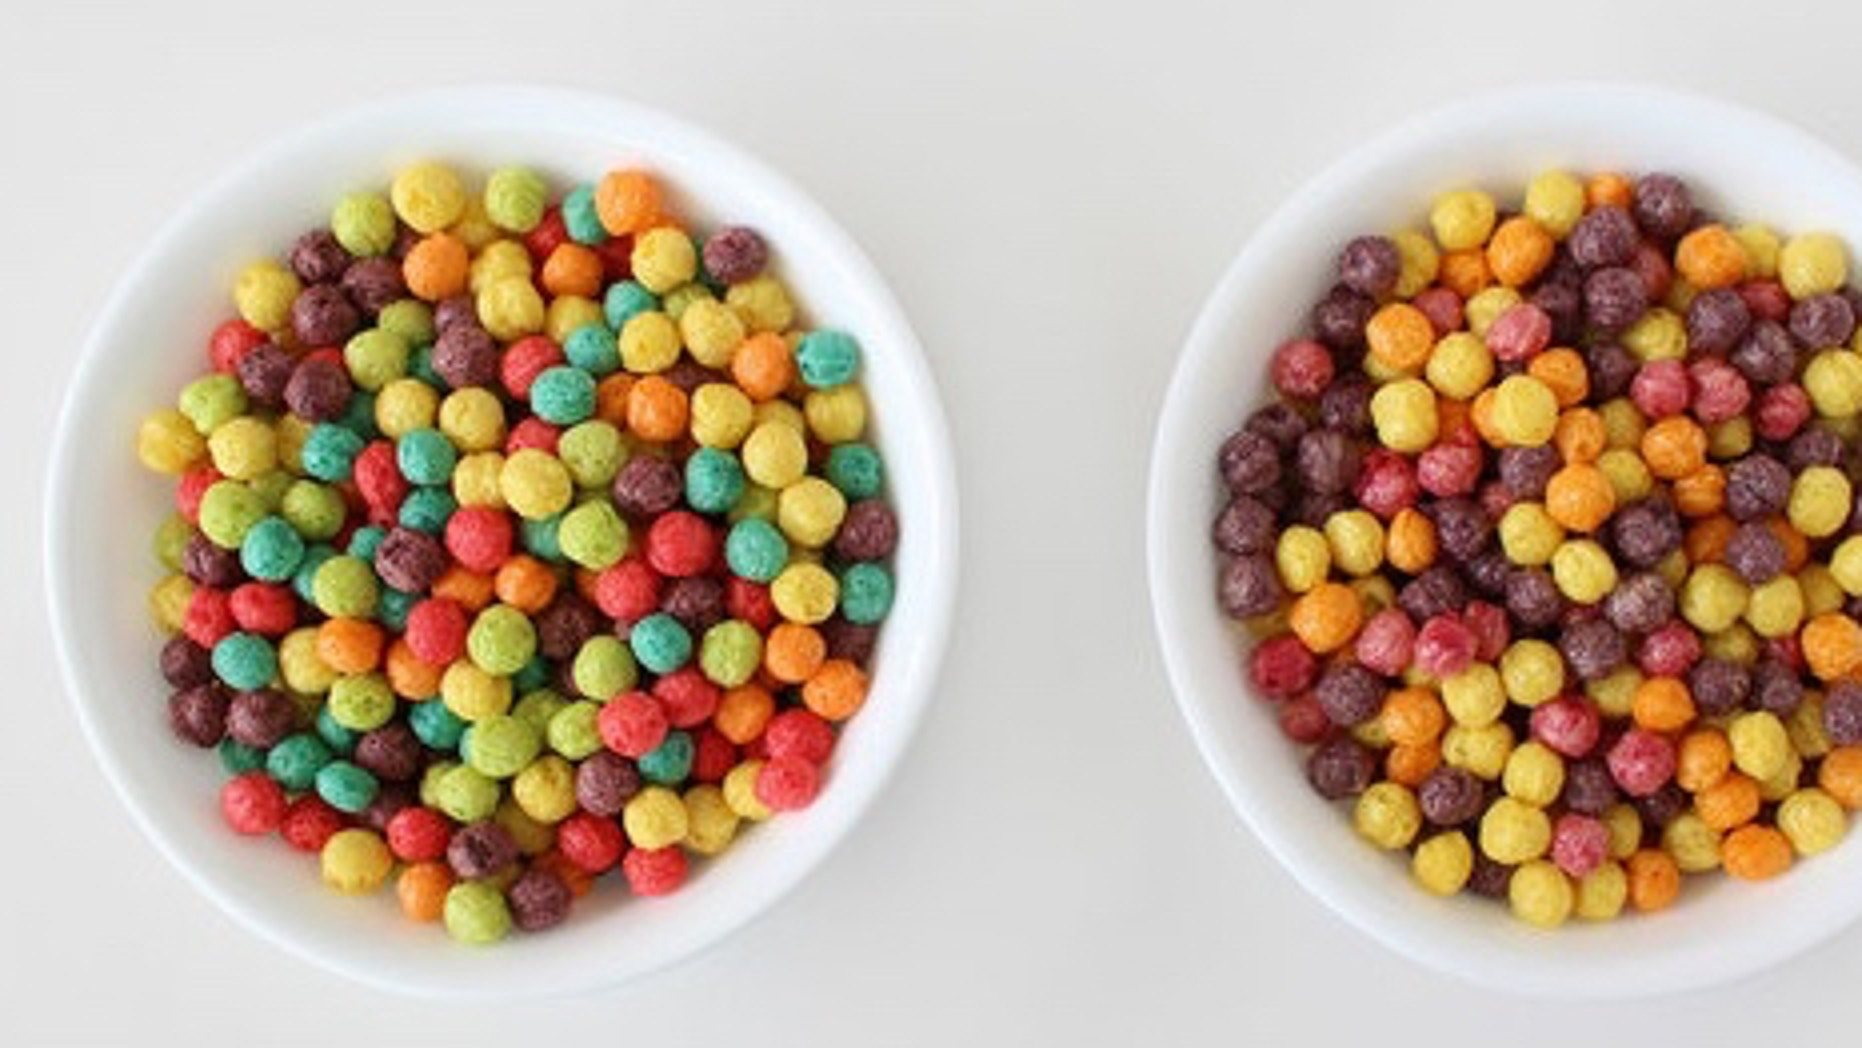 Trix's new colors pale in comparison to the cereals previous pigments, fans say.